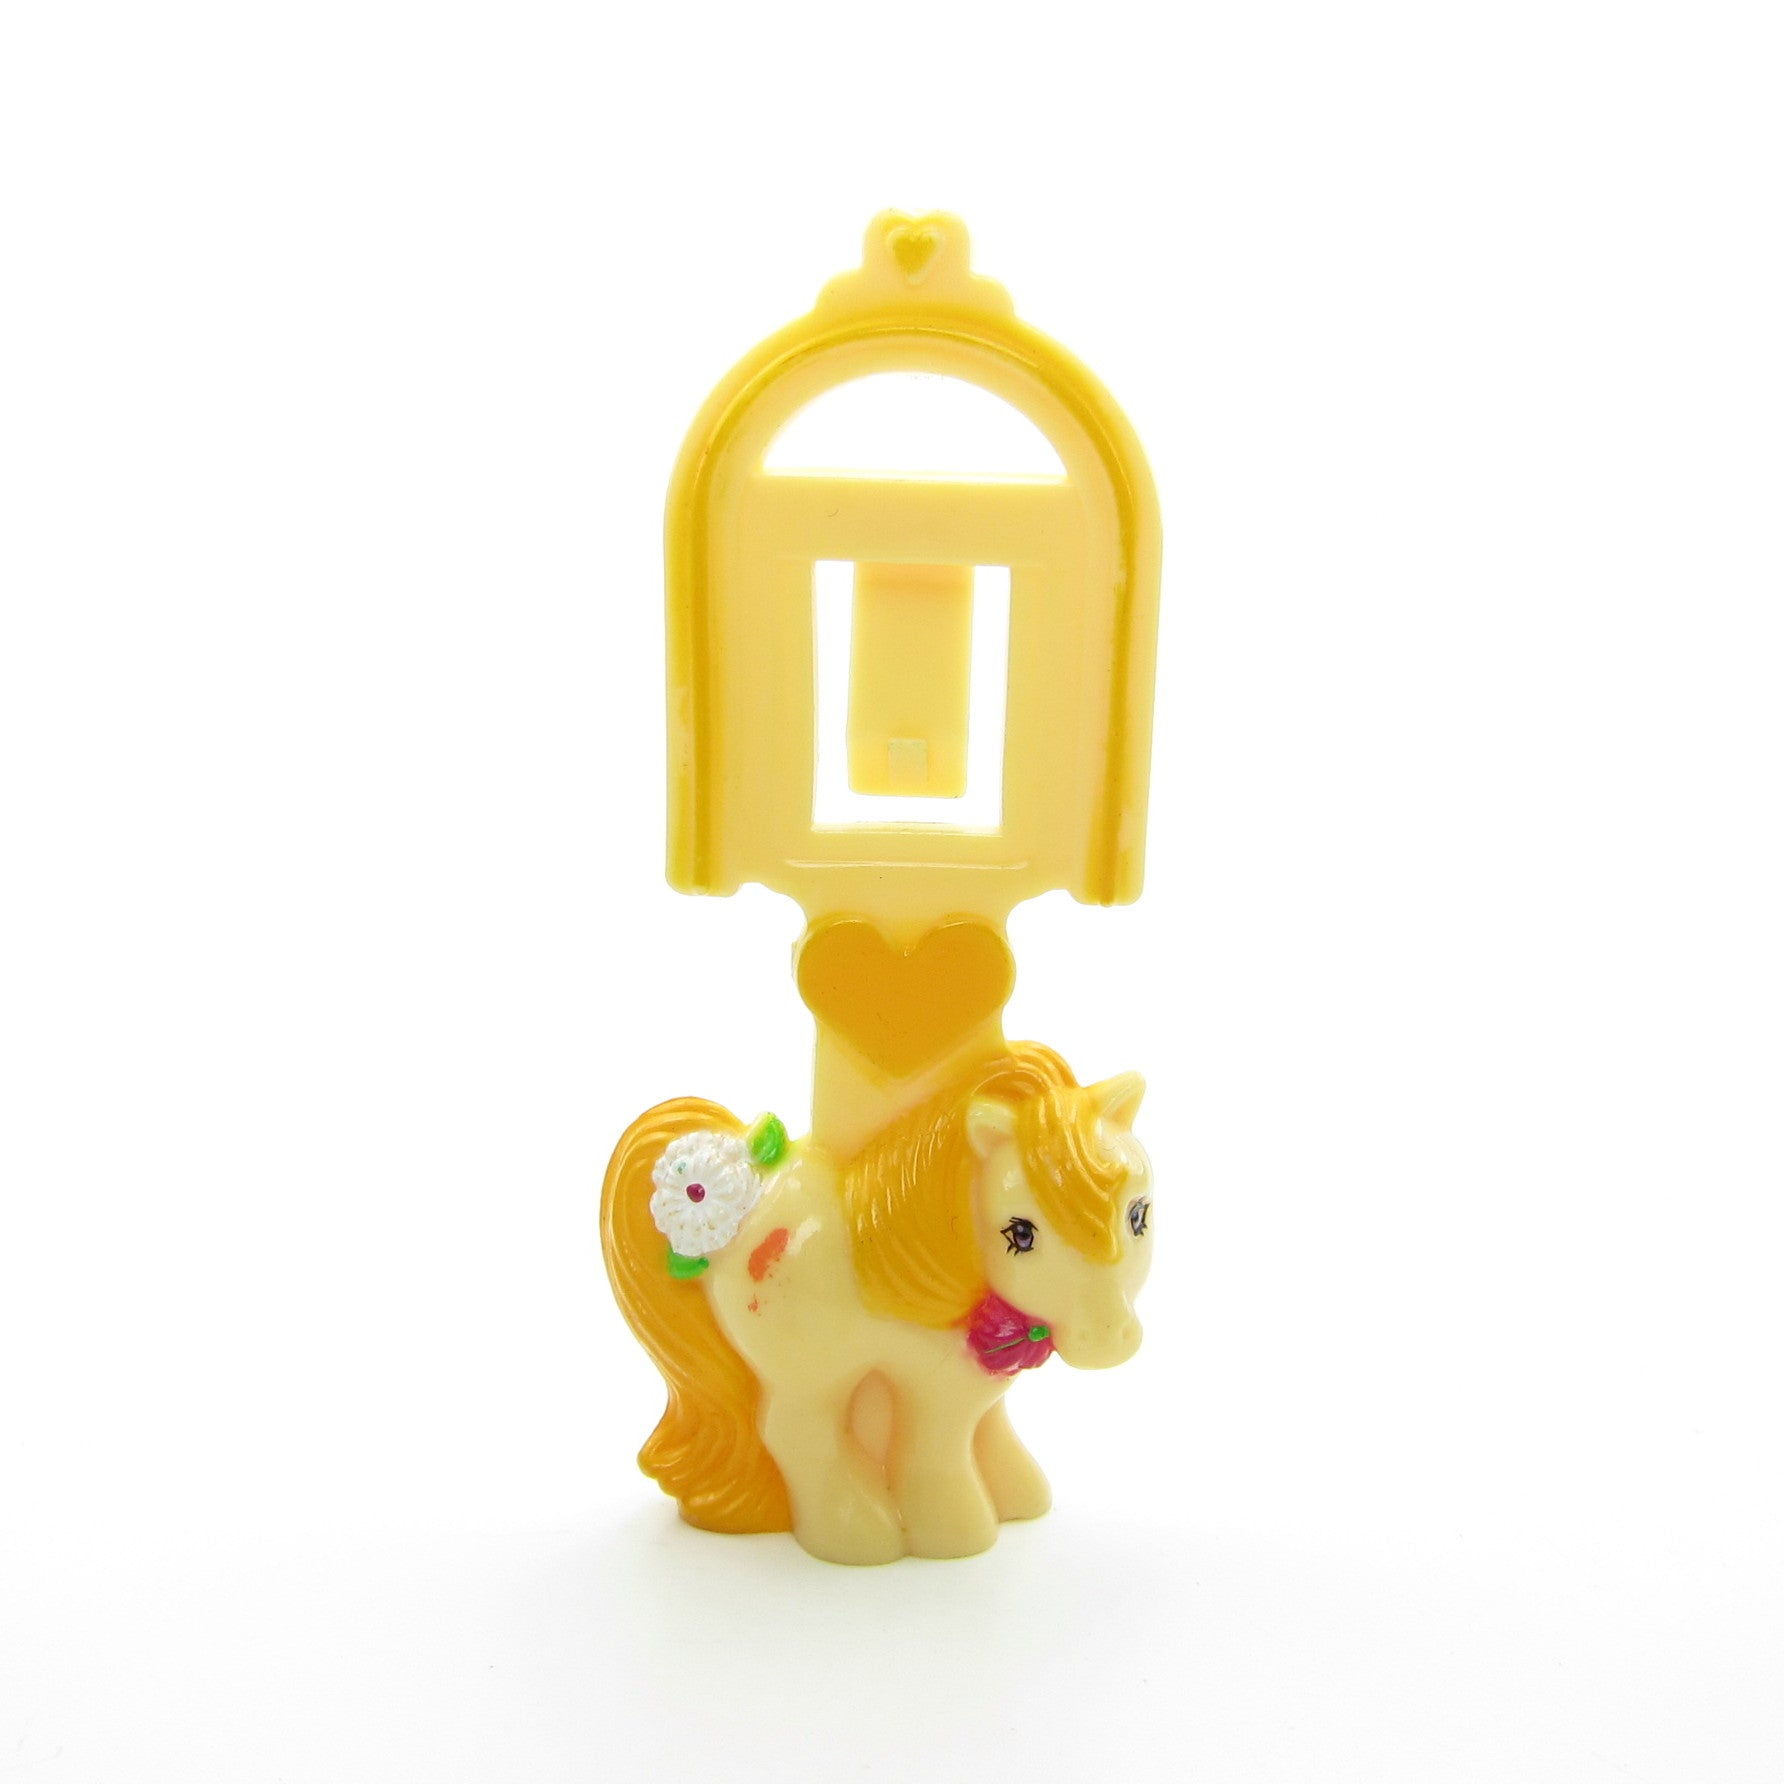 Butterscotch My Little Pony bookmark